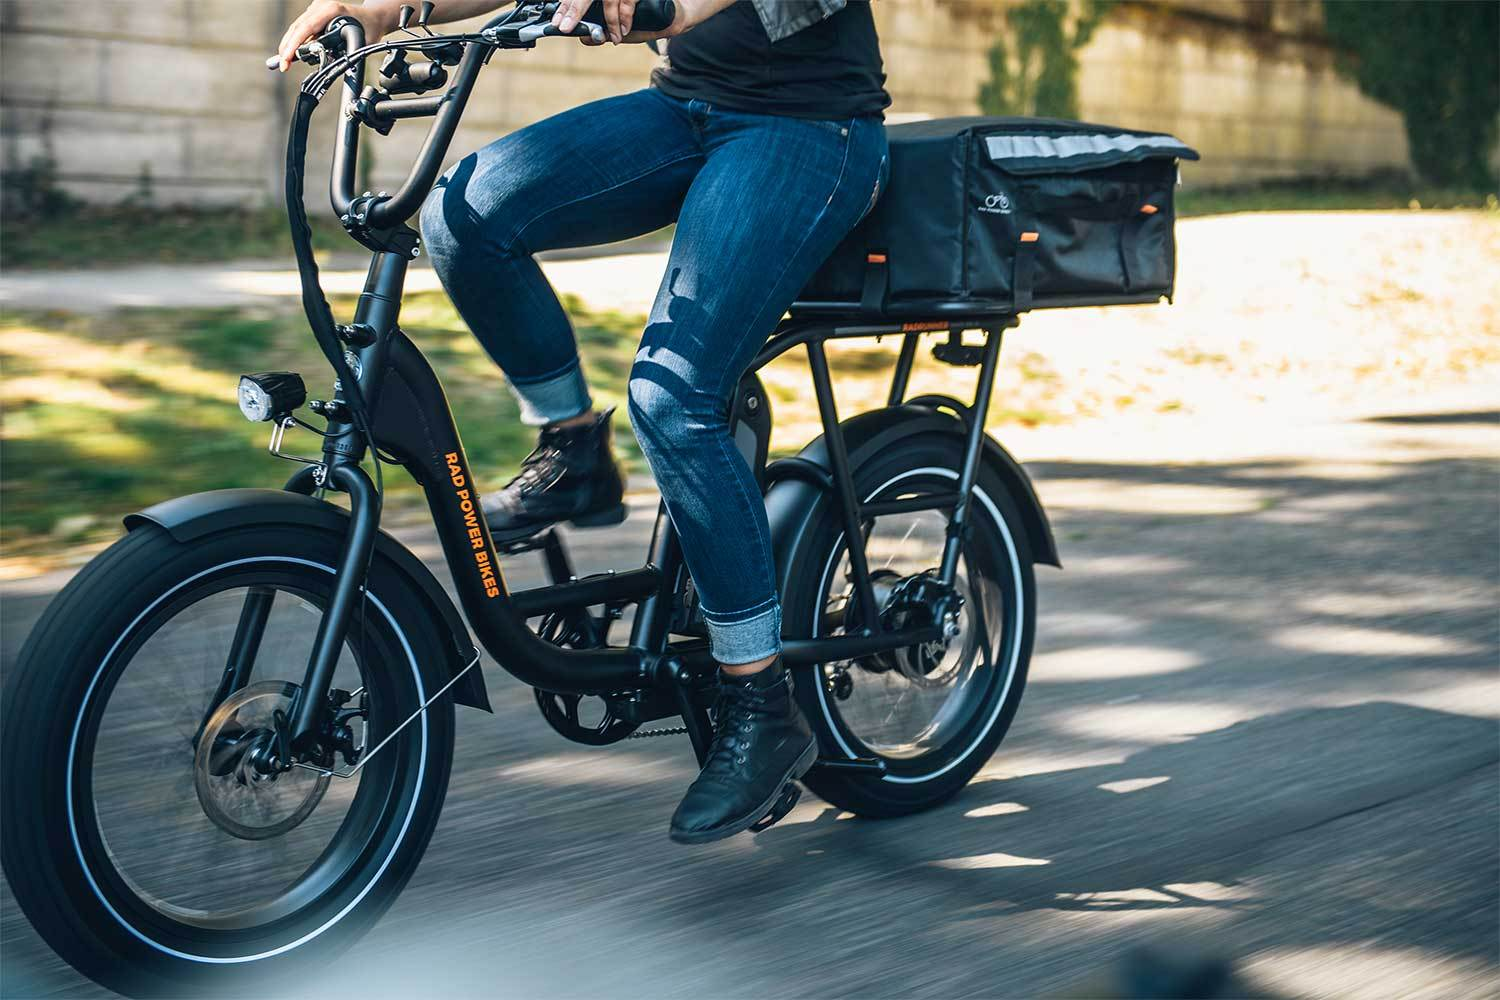 RadRunner e-bike ridden by delivery person